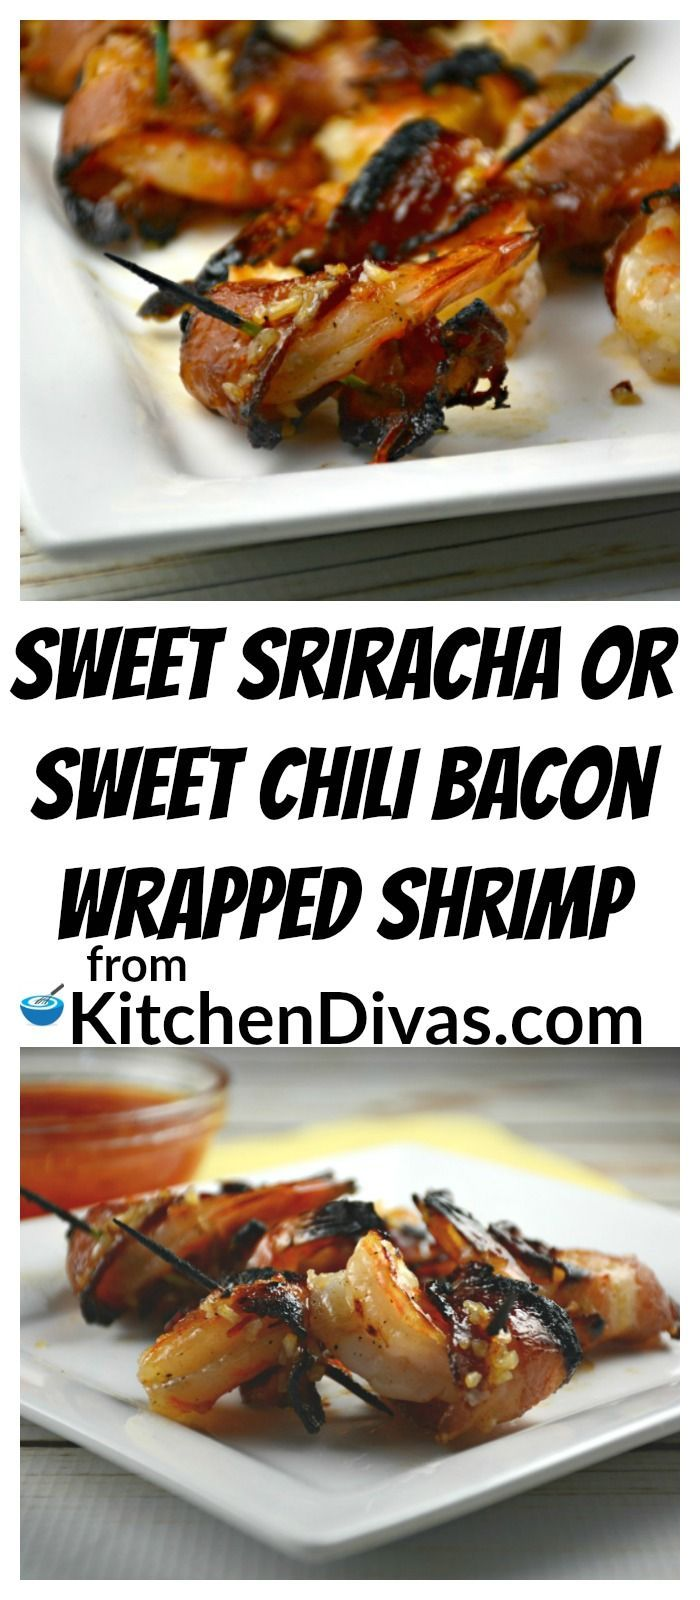 For all of you shrimp fans out there, this recipe for Sweet Sriracha or Sweet Chili Bacon Wrapped Shrimp is a definite keeper!  Easy to prepare and worth every minute!  In our house we make this shrimp recipe both ways, depending on our mood or who is eating or making them.  Prepared either way, this dish will not disappoint!